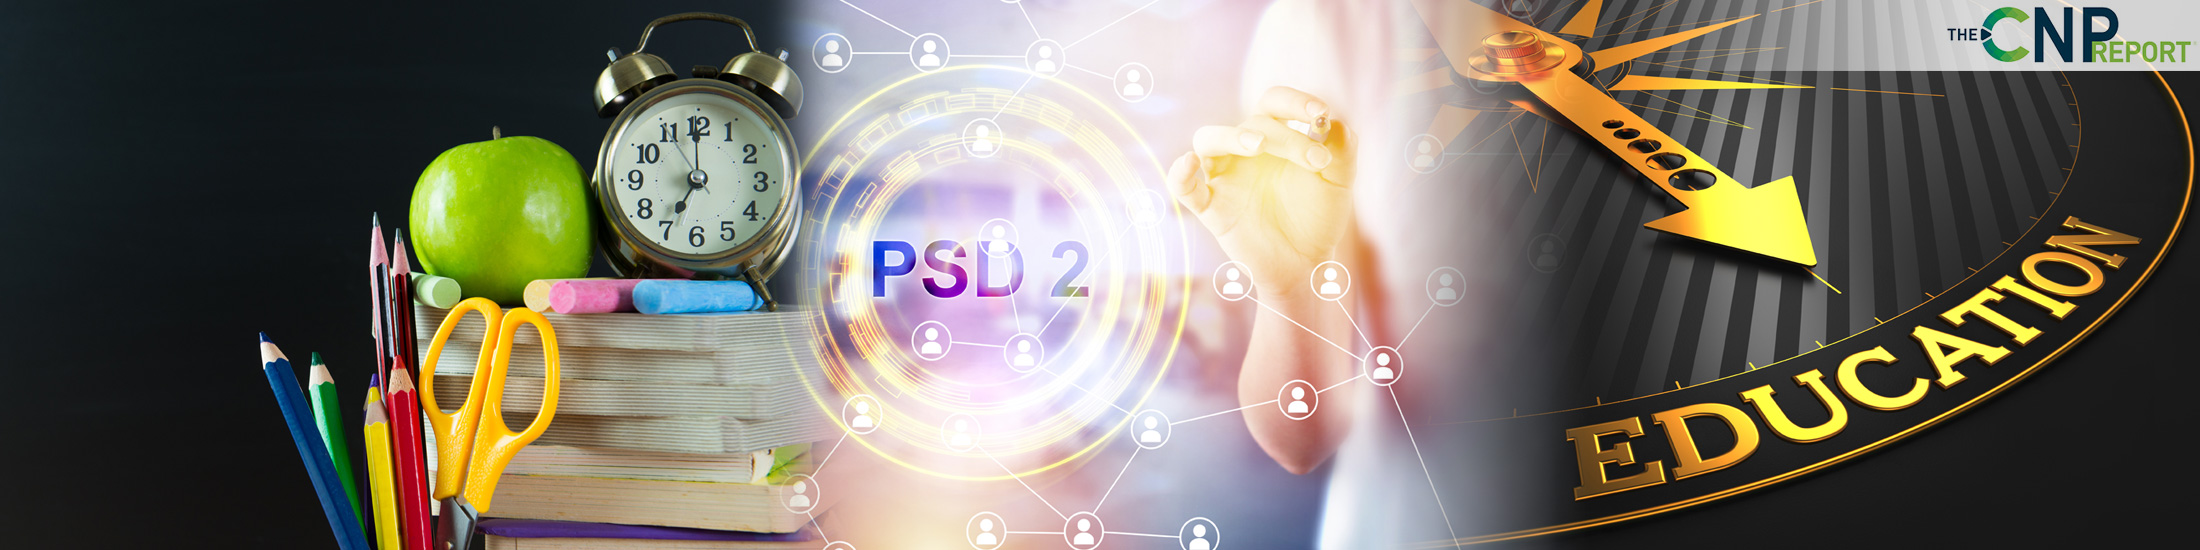 Merchants, Banks and Payment Providers Must Educate Consumers Now About PSD2 Fraud Rules: Report